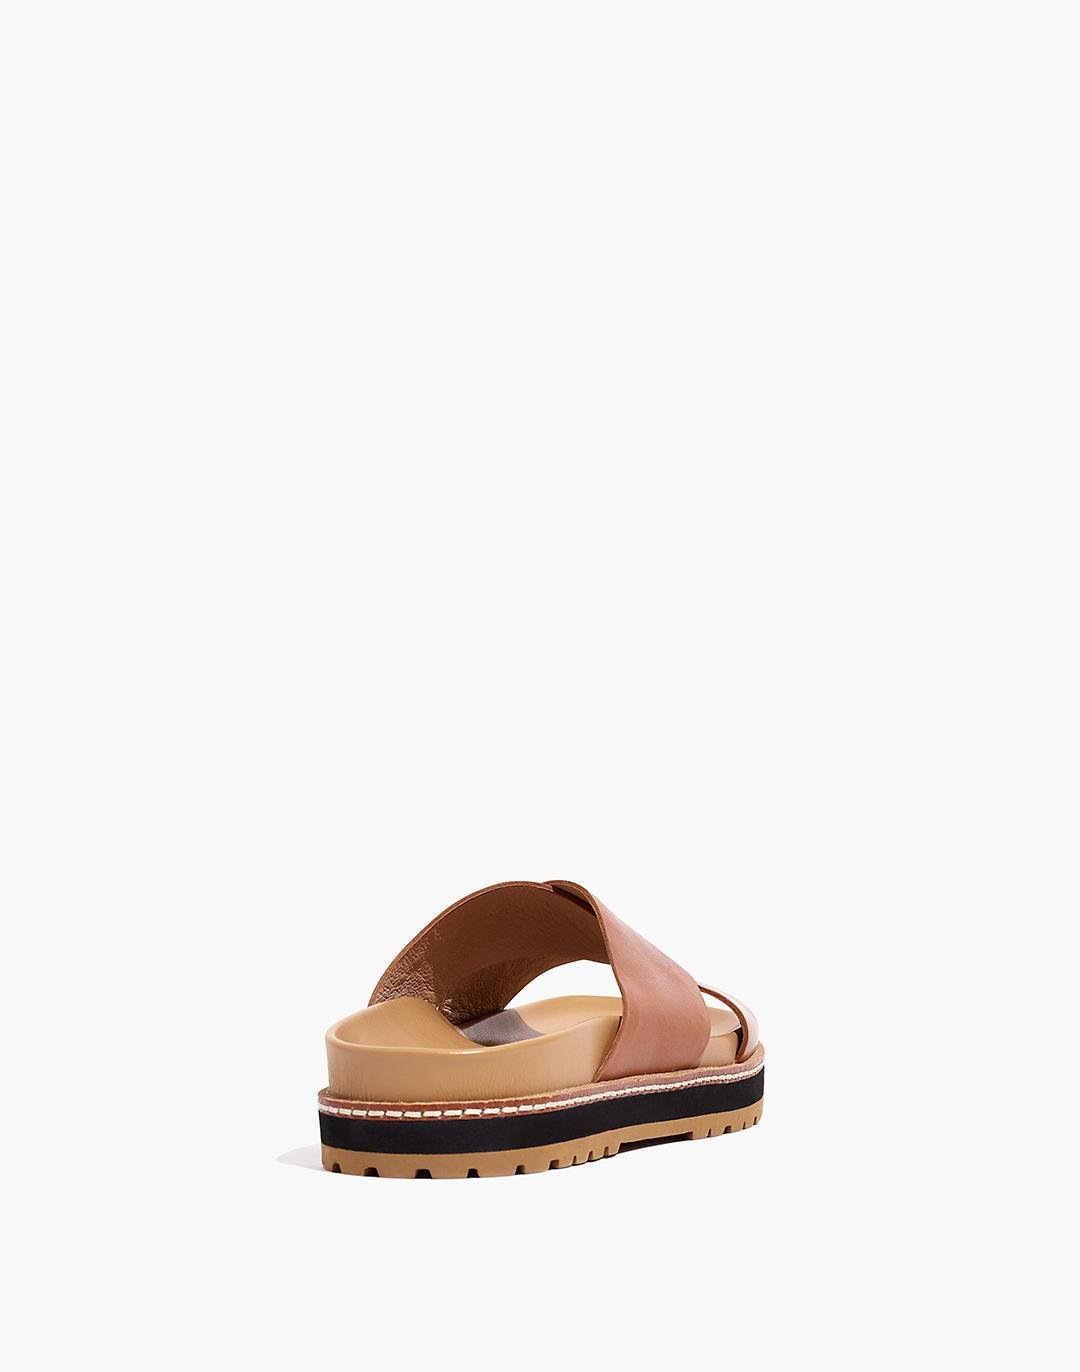 The Dayna Lugsole Slide Sandal in Leather 2